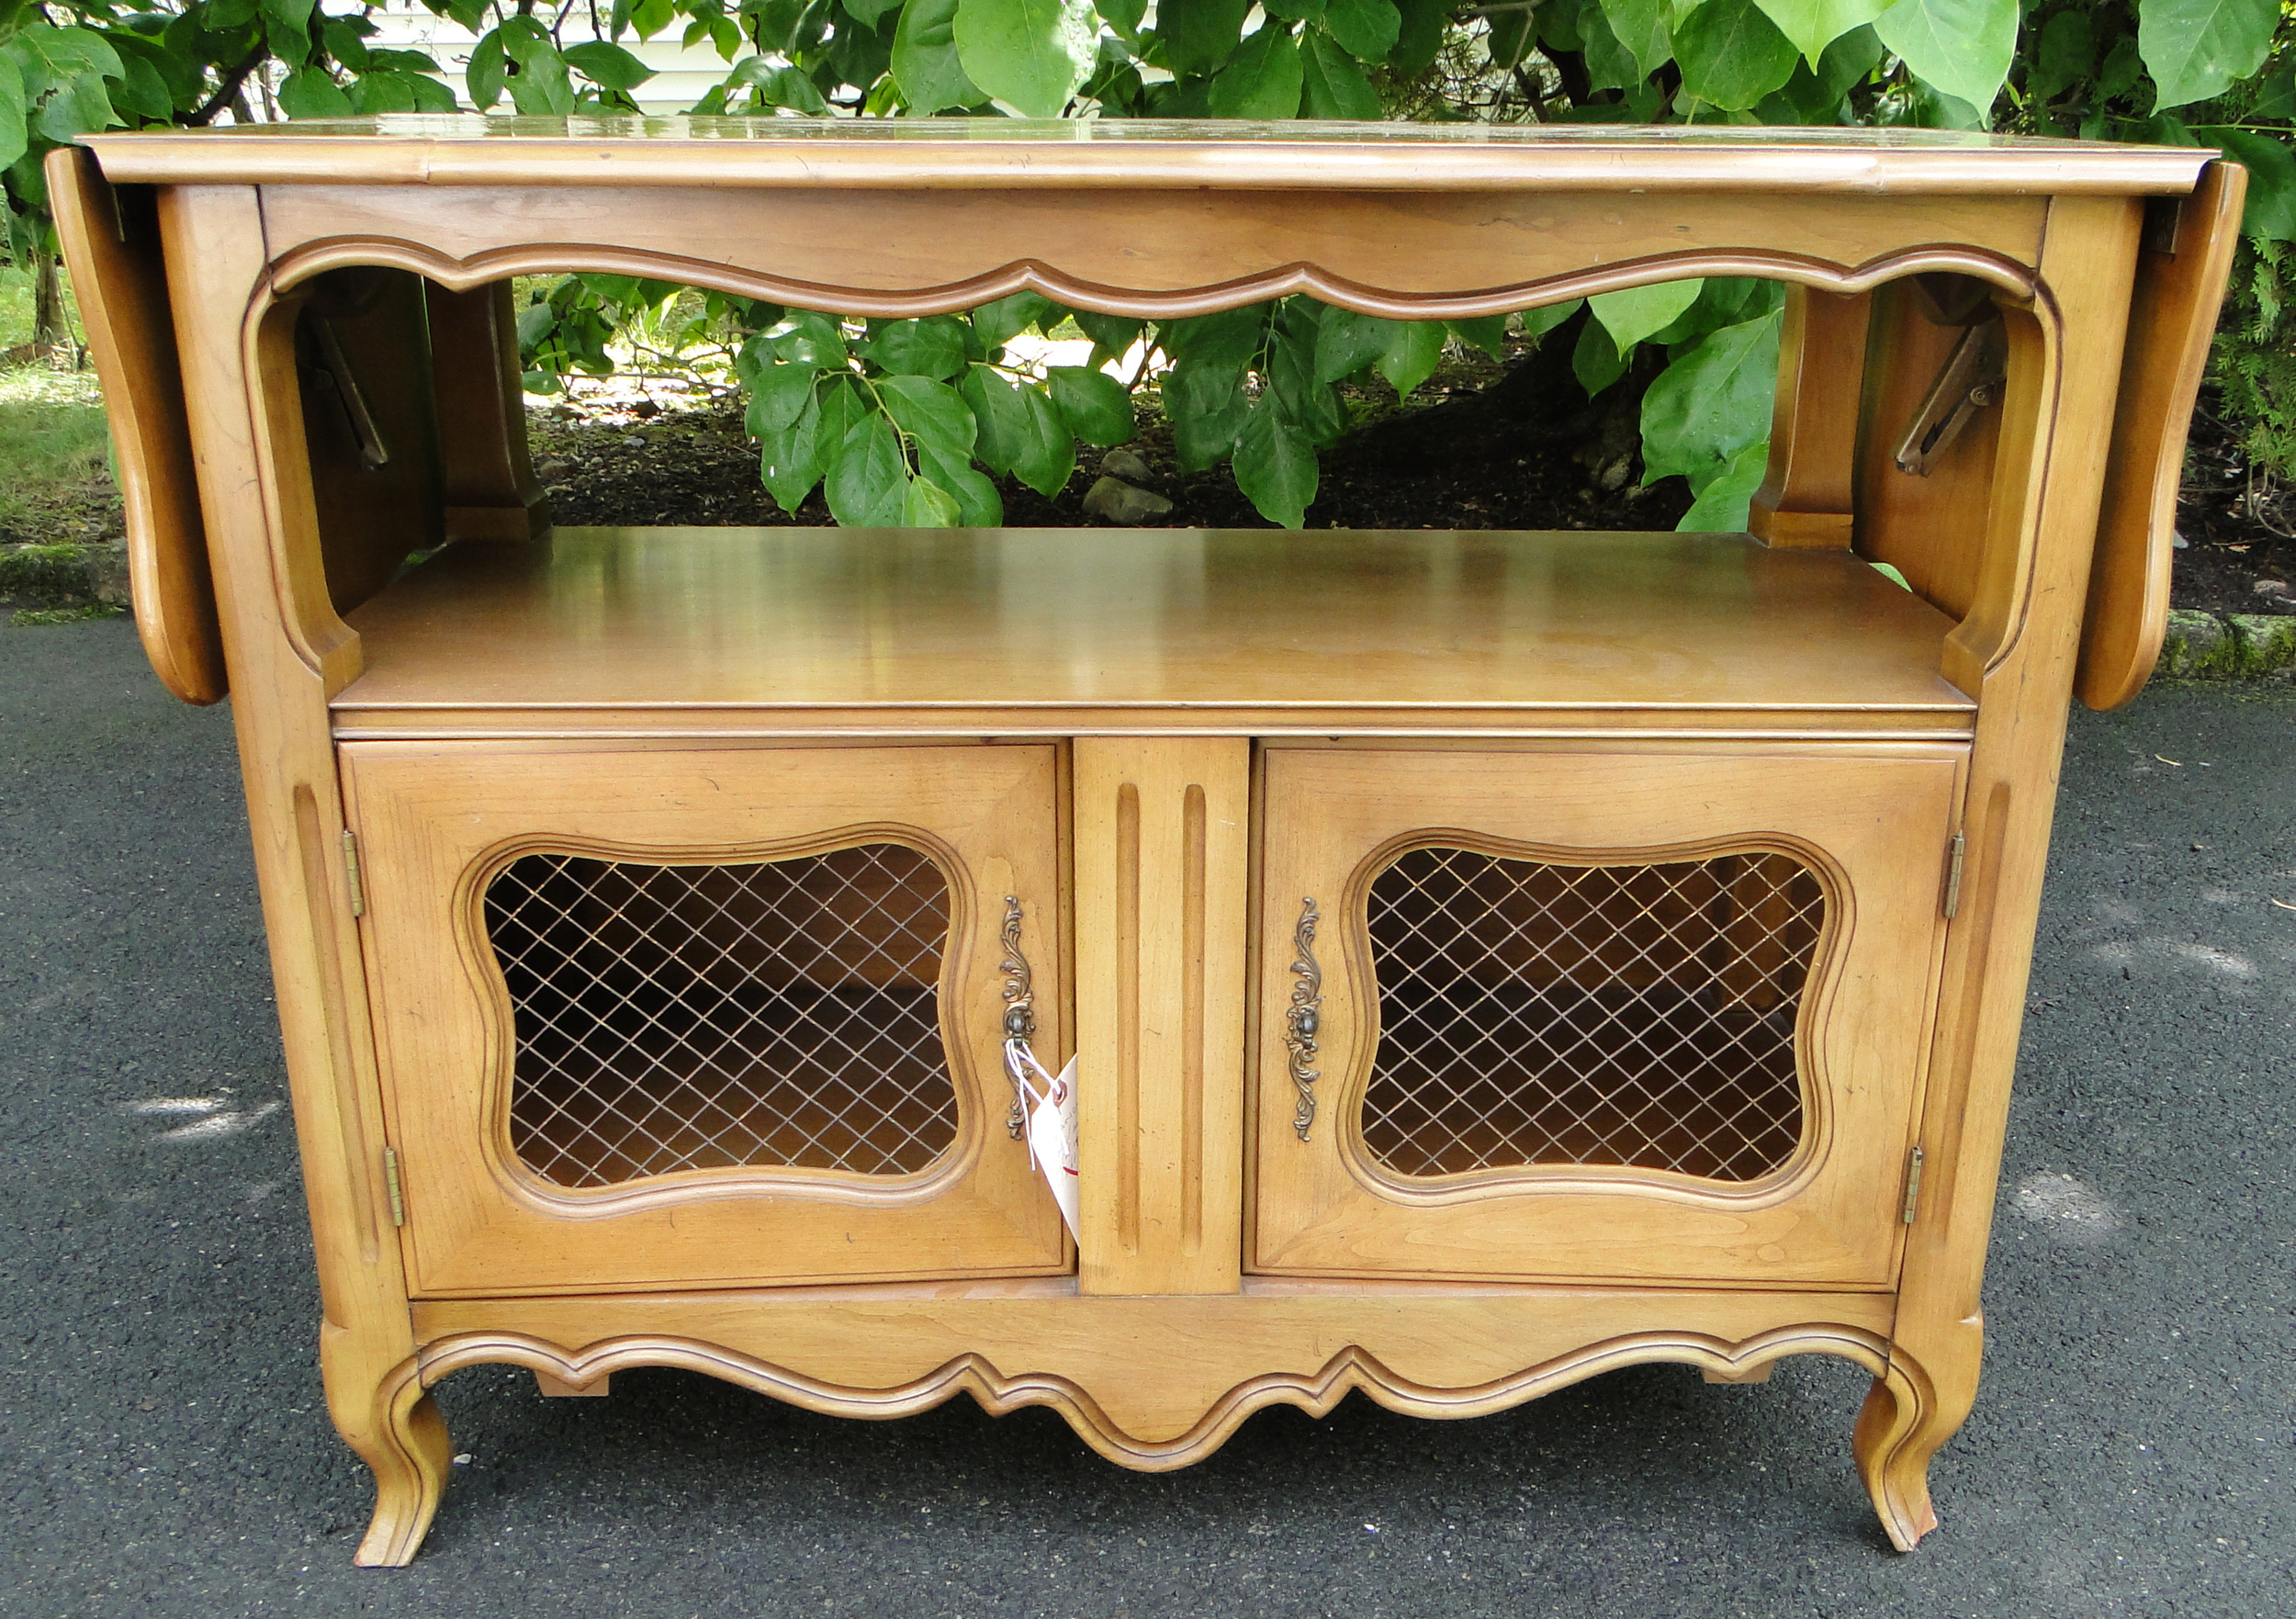 Great piece for entertaining